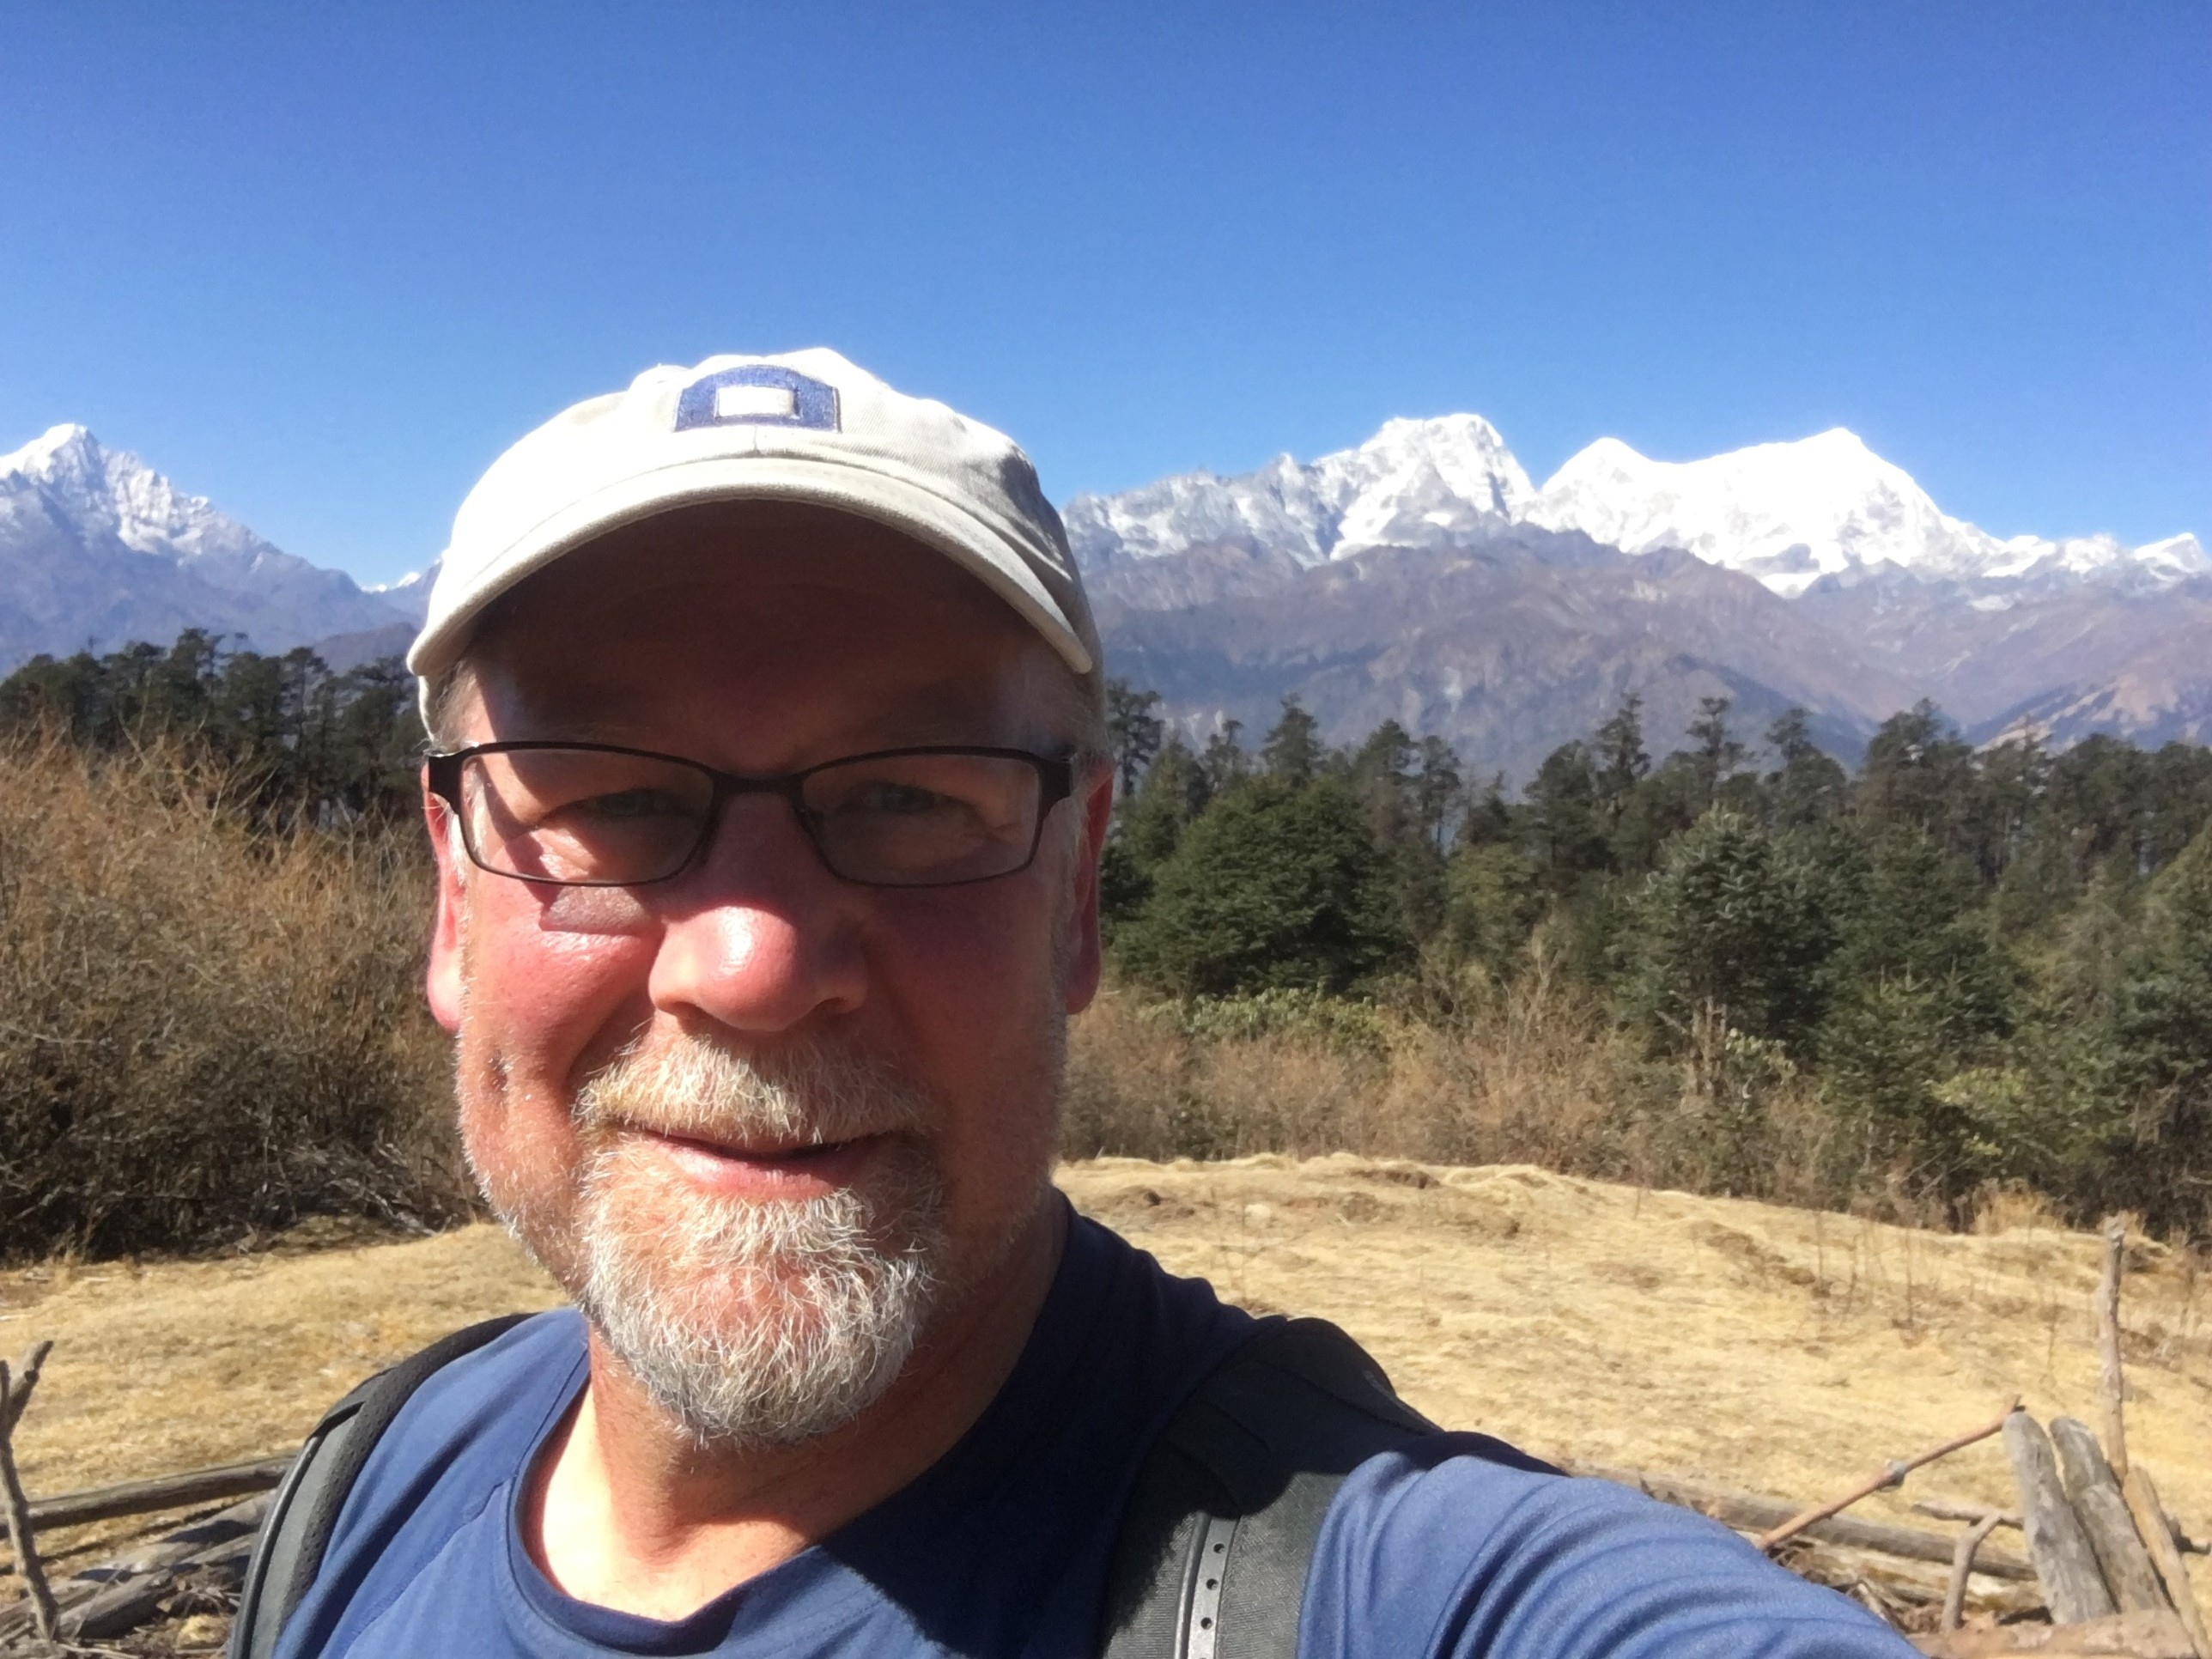 Photo of Edge of Seven, Executive Director Peter Mason. He is standing in front of a mountain, smiling in nature.